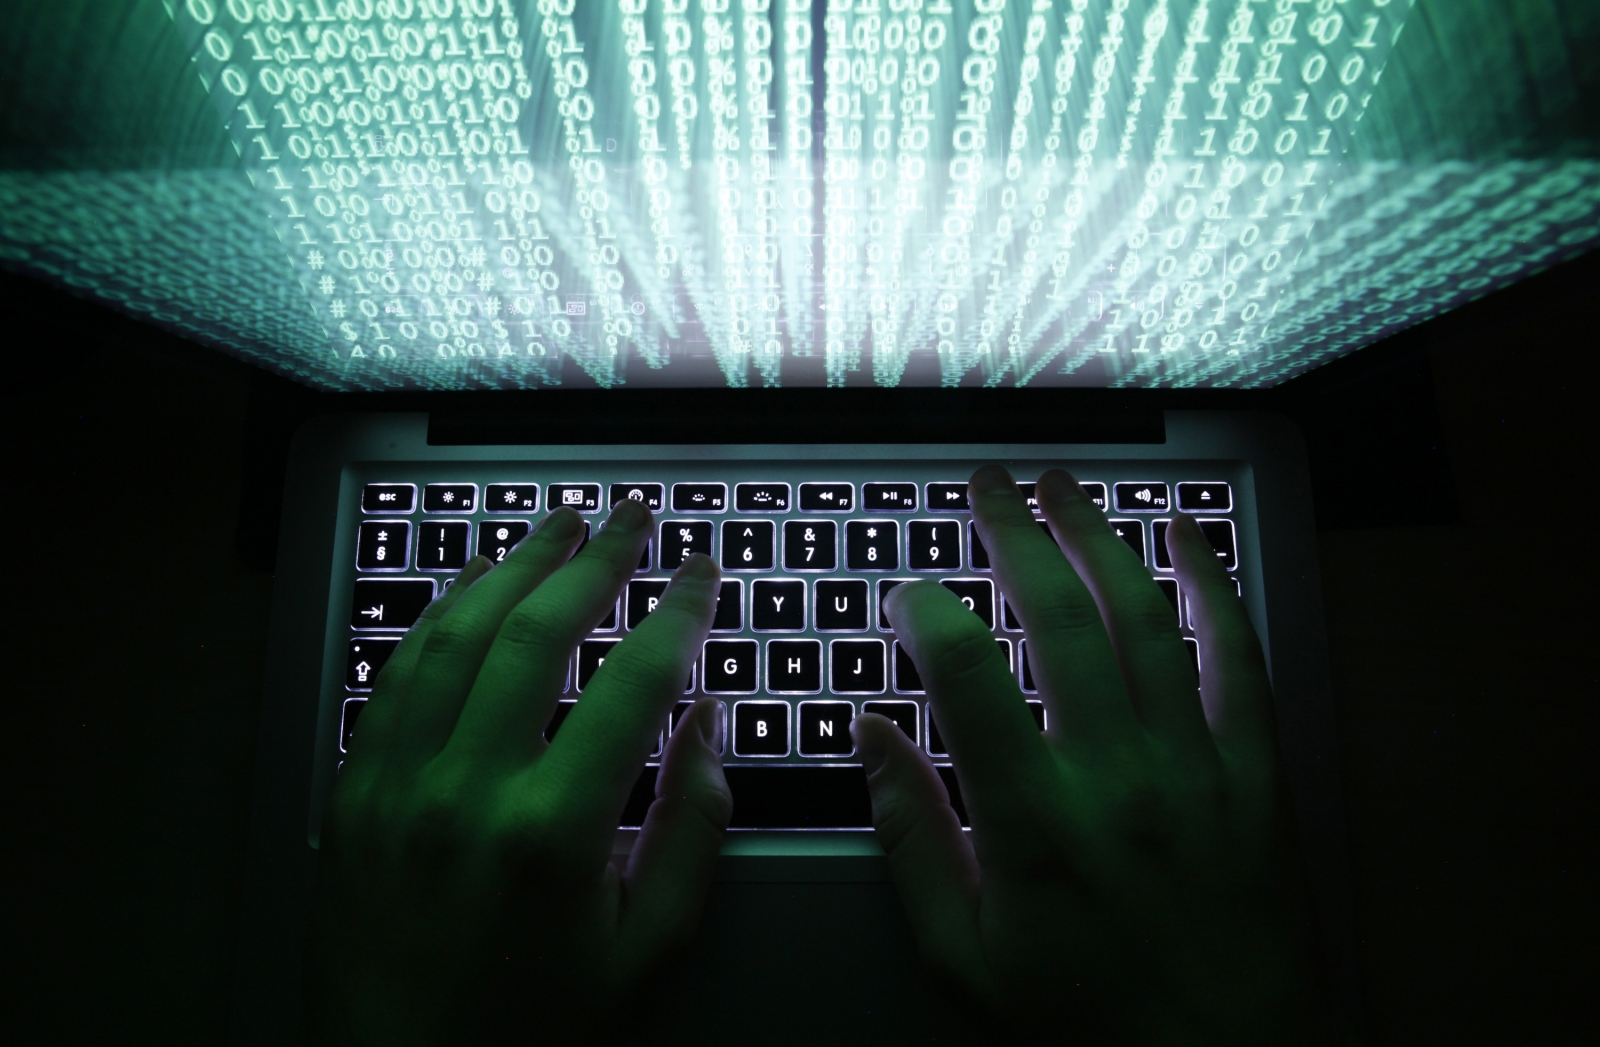 Lloyds DDoS attack was launched by a hacker attempting to extort £75,000 from the bank - report